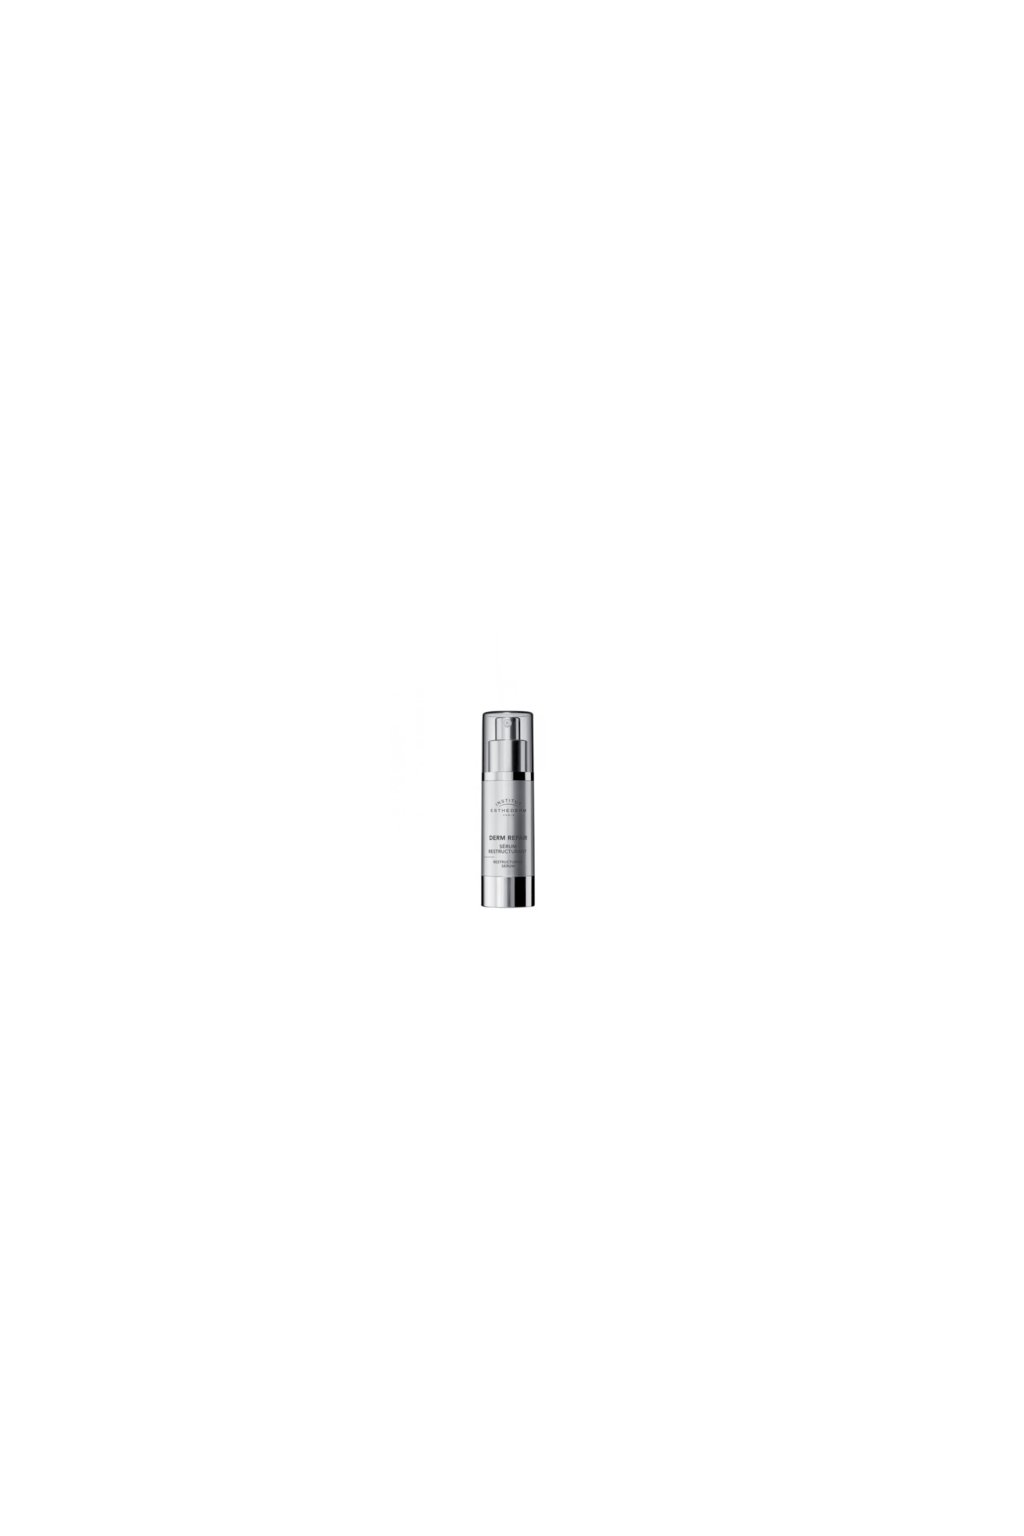 DERM REPAIR Restructuring Serum 247x300